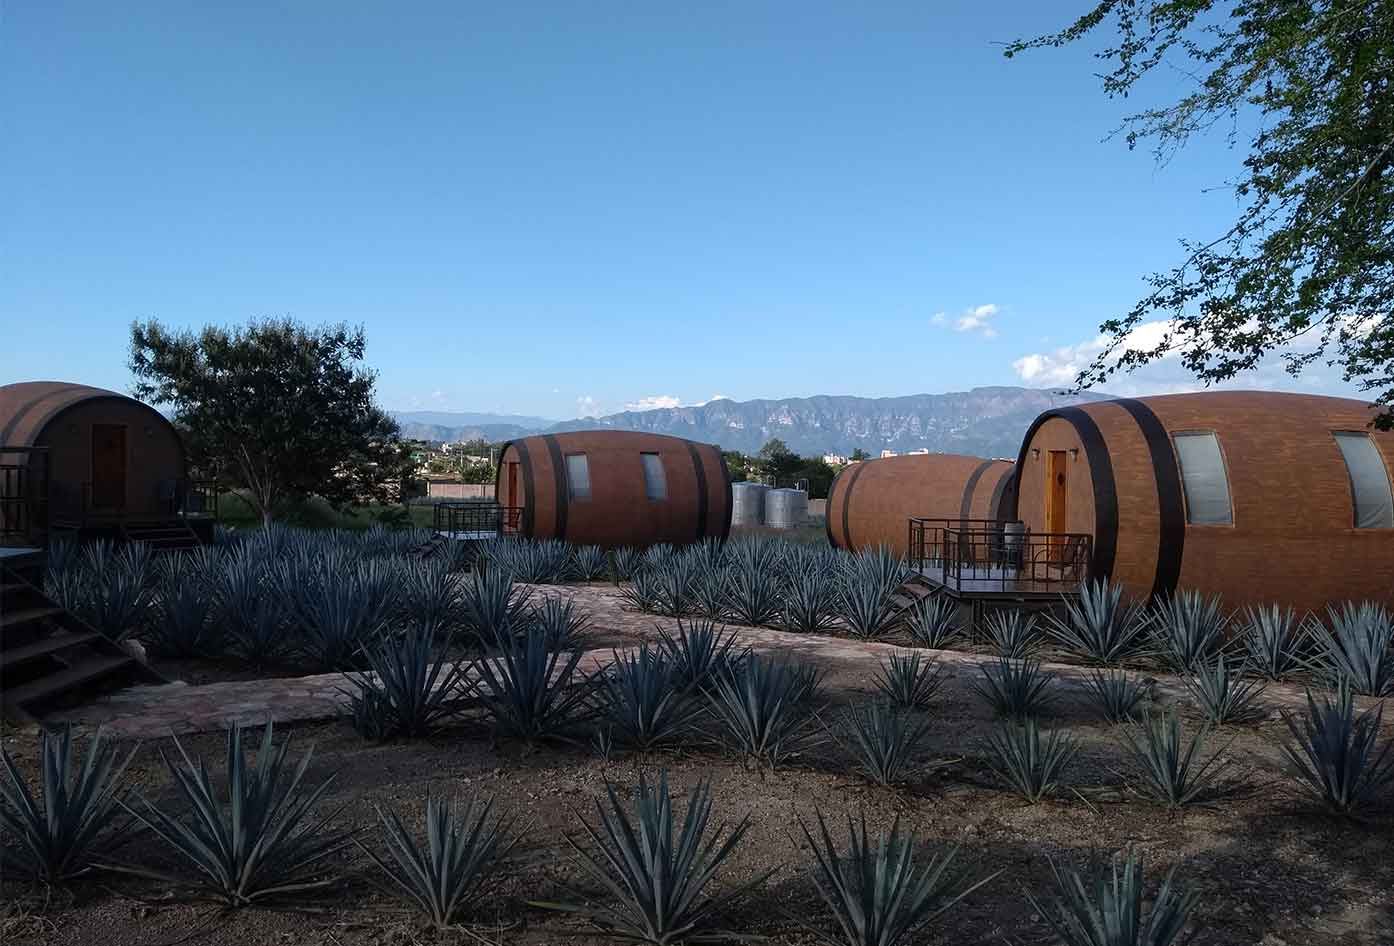 welcome to tequila mexico